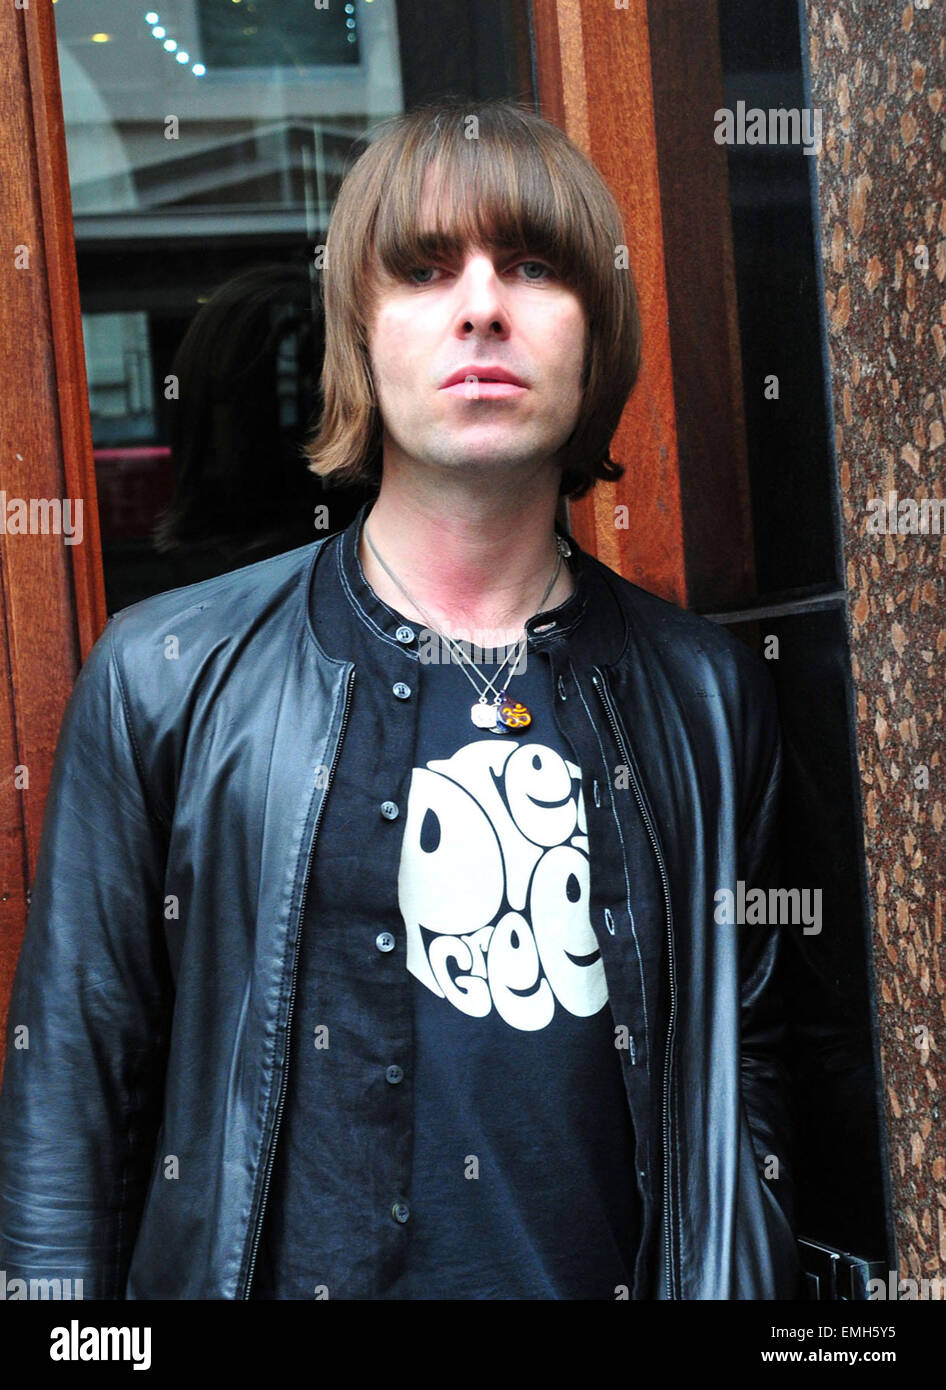 13.APRIL.2011. LIVERPOOL  LIAM GALLAGHER LEAVING THE HARD DAYS NIGHT HOTEL IN LIVERPOOL, UK. - Stock Image